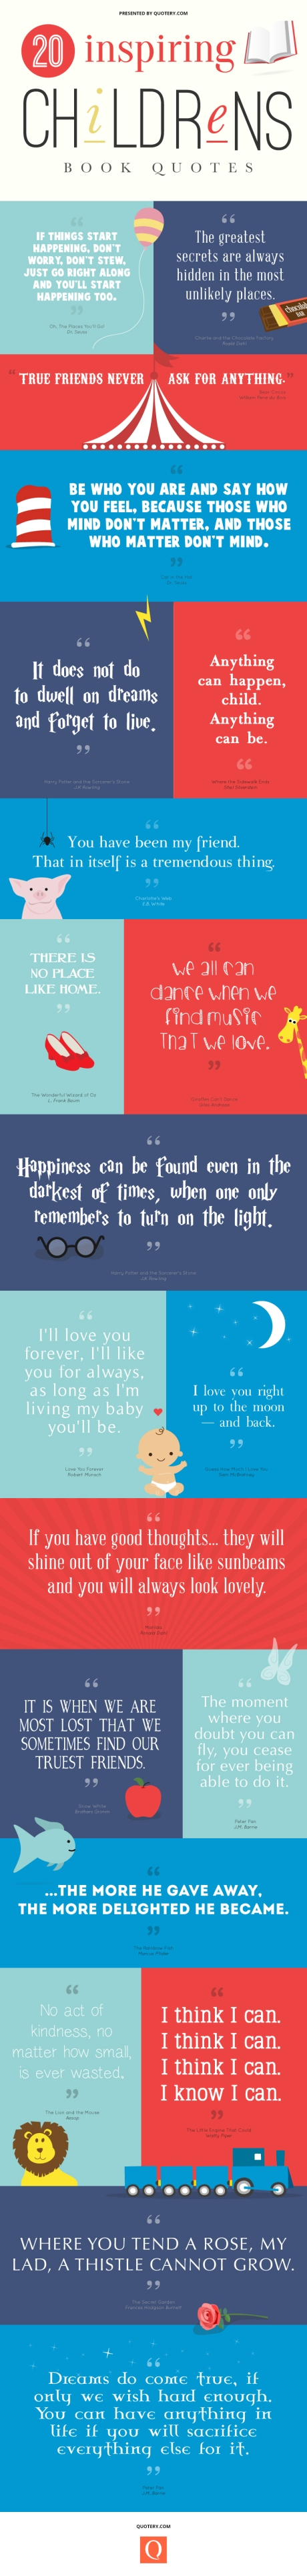 infographic-childrens-book-quotes.jpg.pagespeed.ic.FM1HApCh03